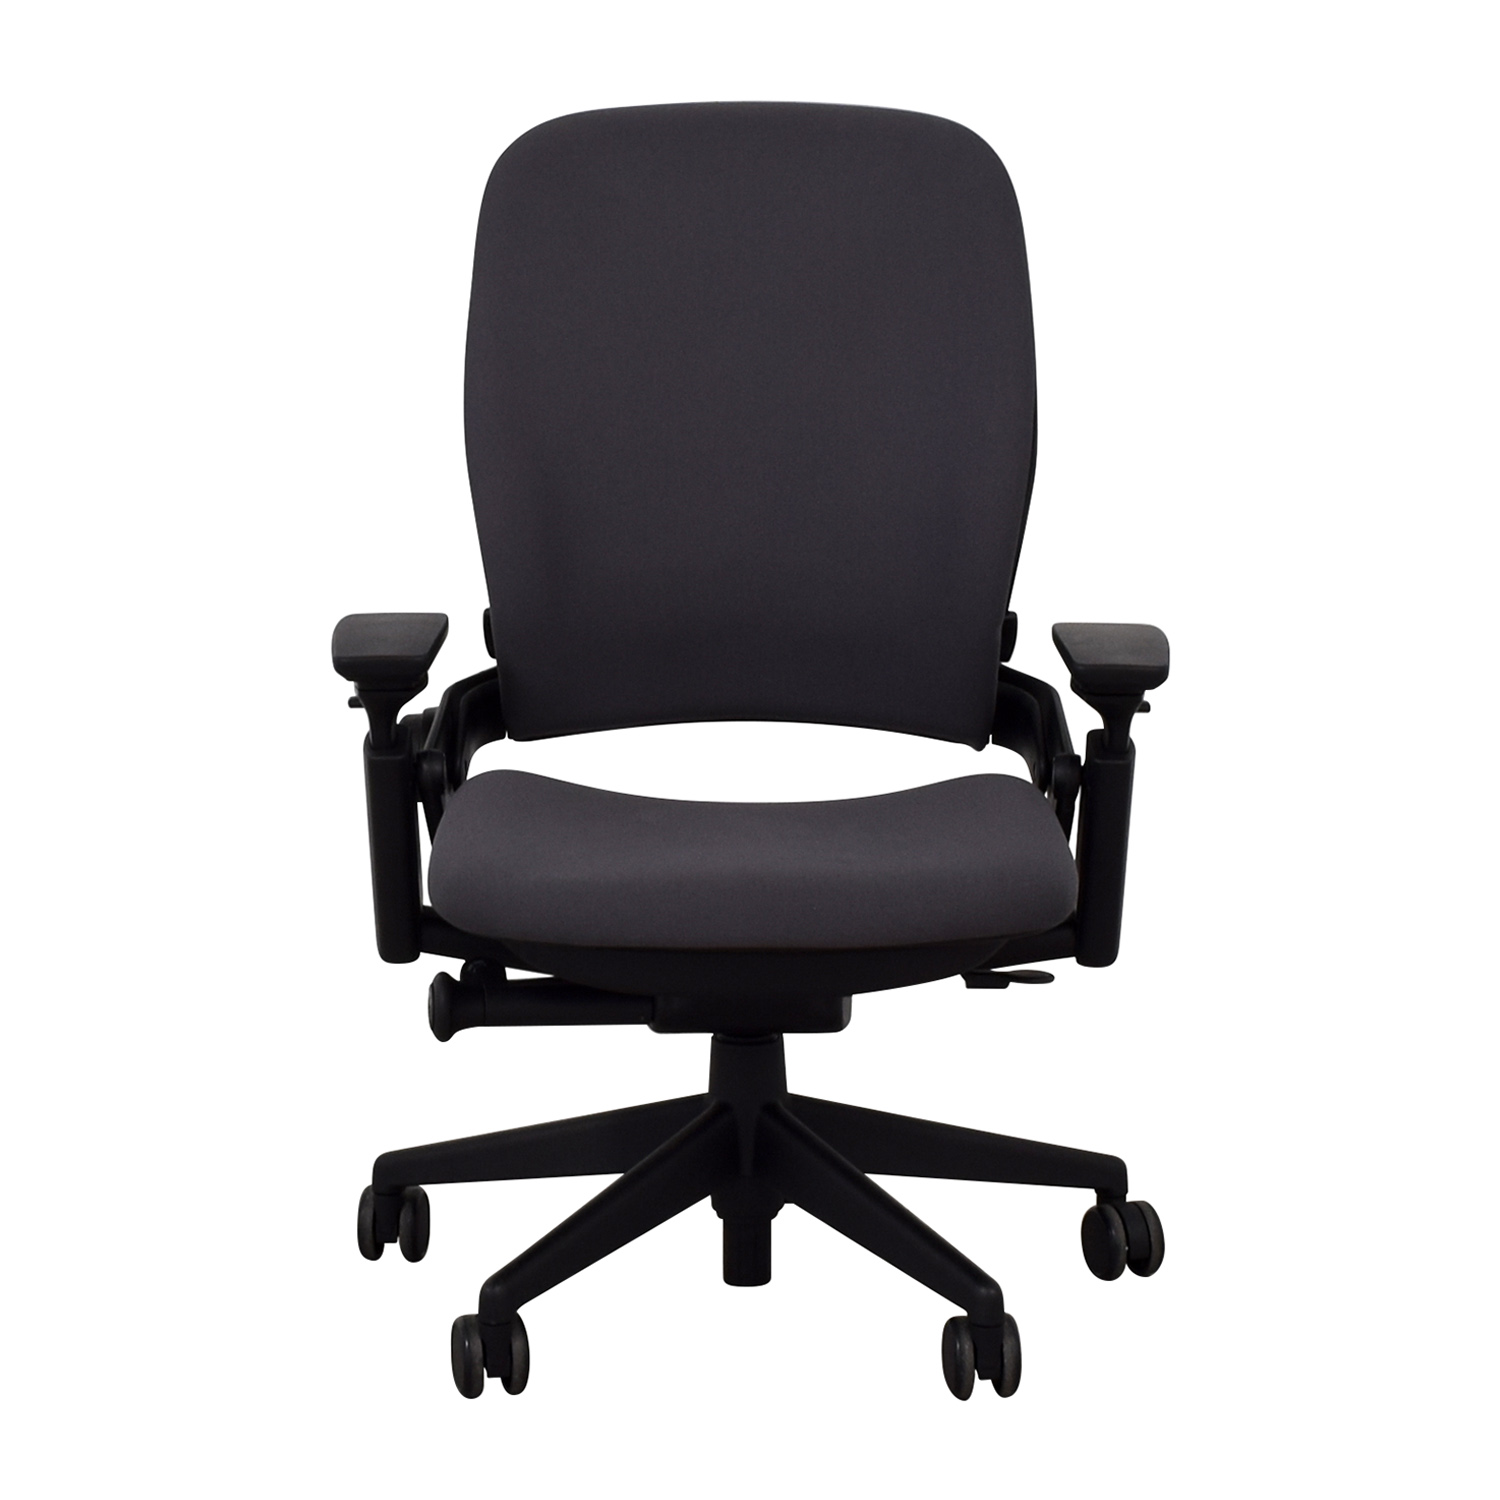 Steelcase Steelcase Leap V2 Office Chair used